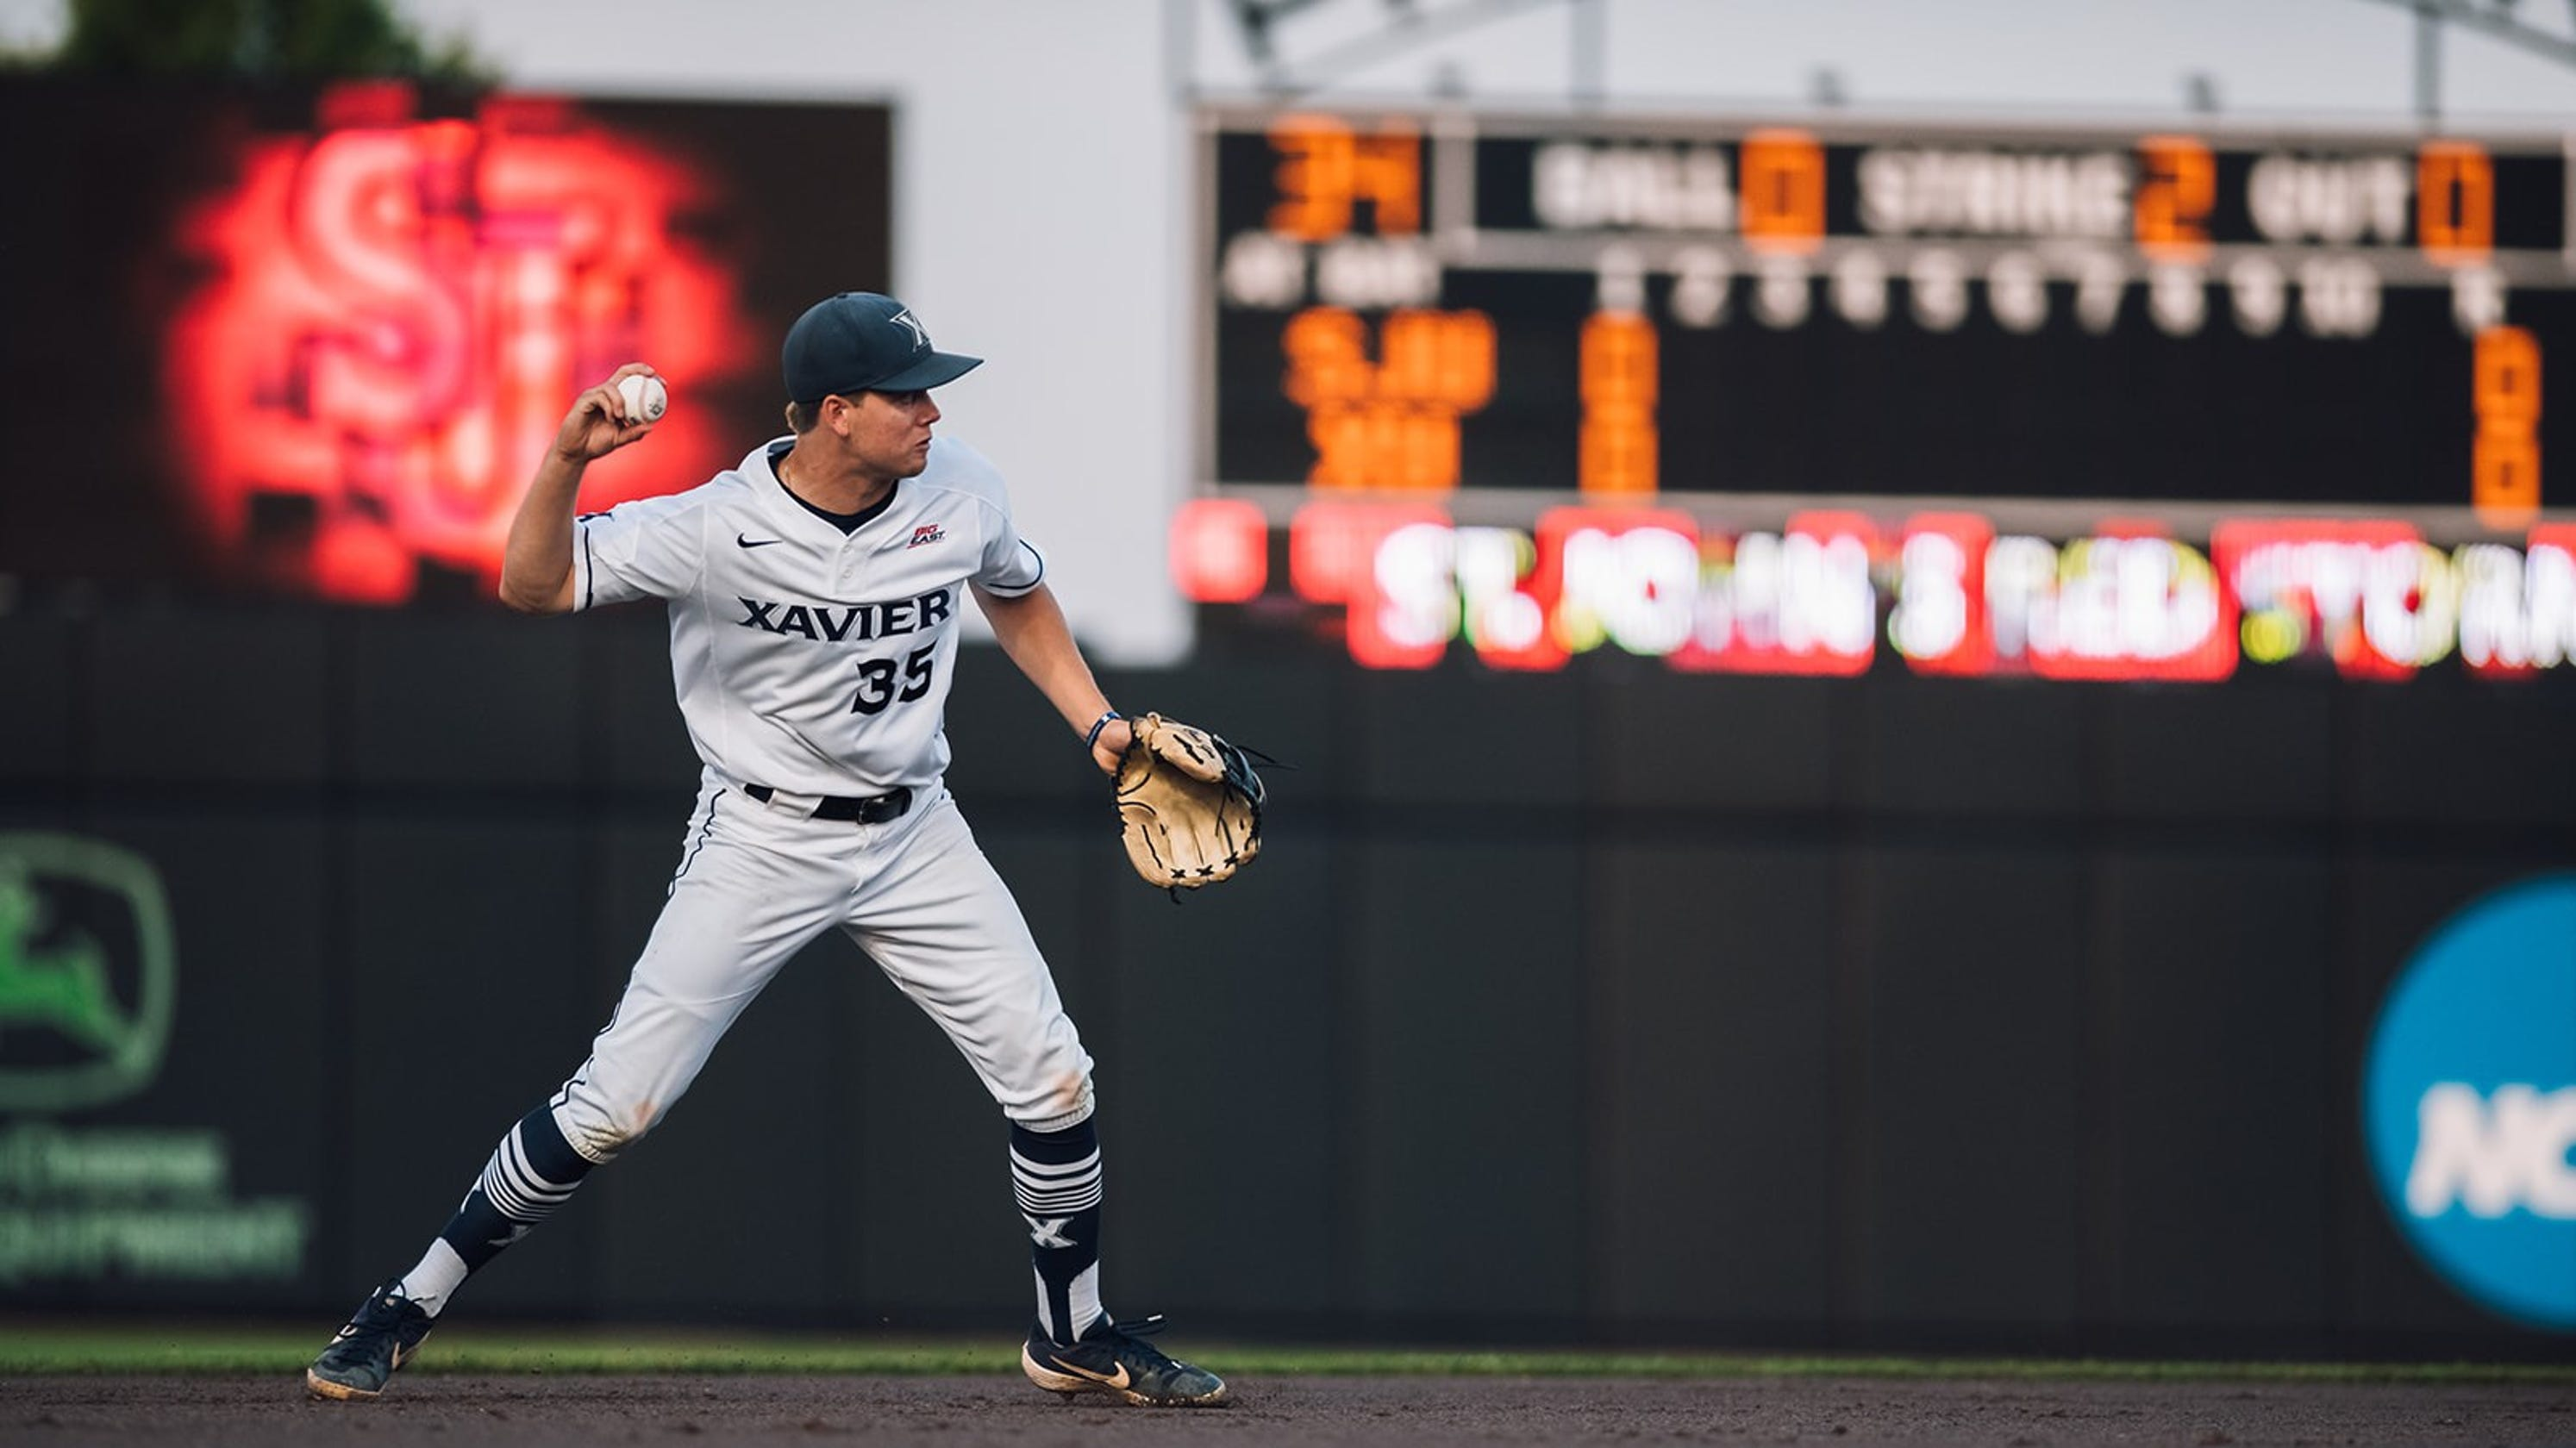 MLB Draft: Xavier's Givin Goes To The San Diego Padres In